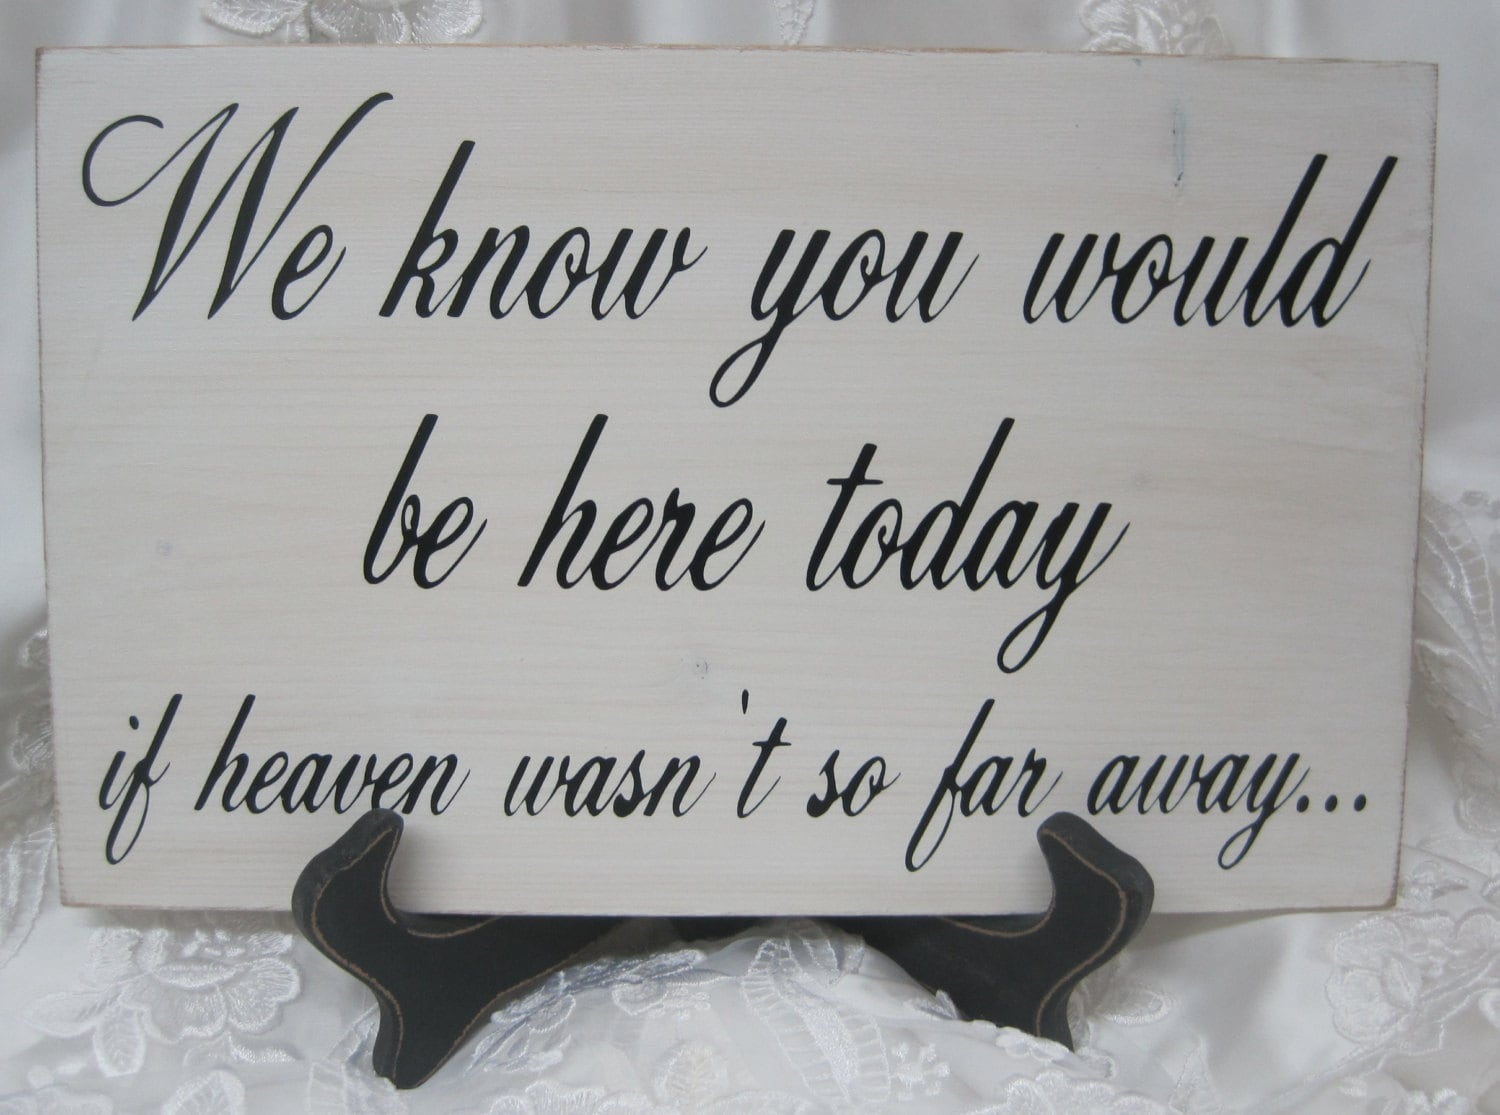 Far Away Love Quotes Memorial We Know You Would Be Here Today If Heaven Wasn't